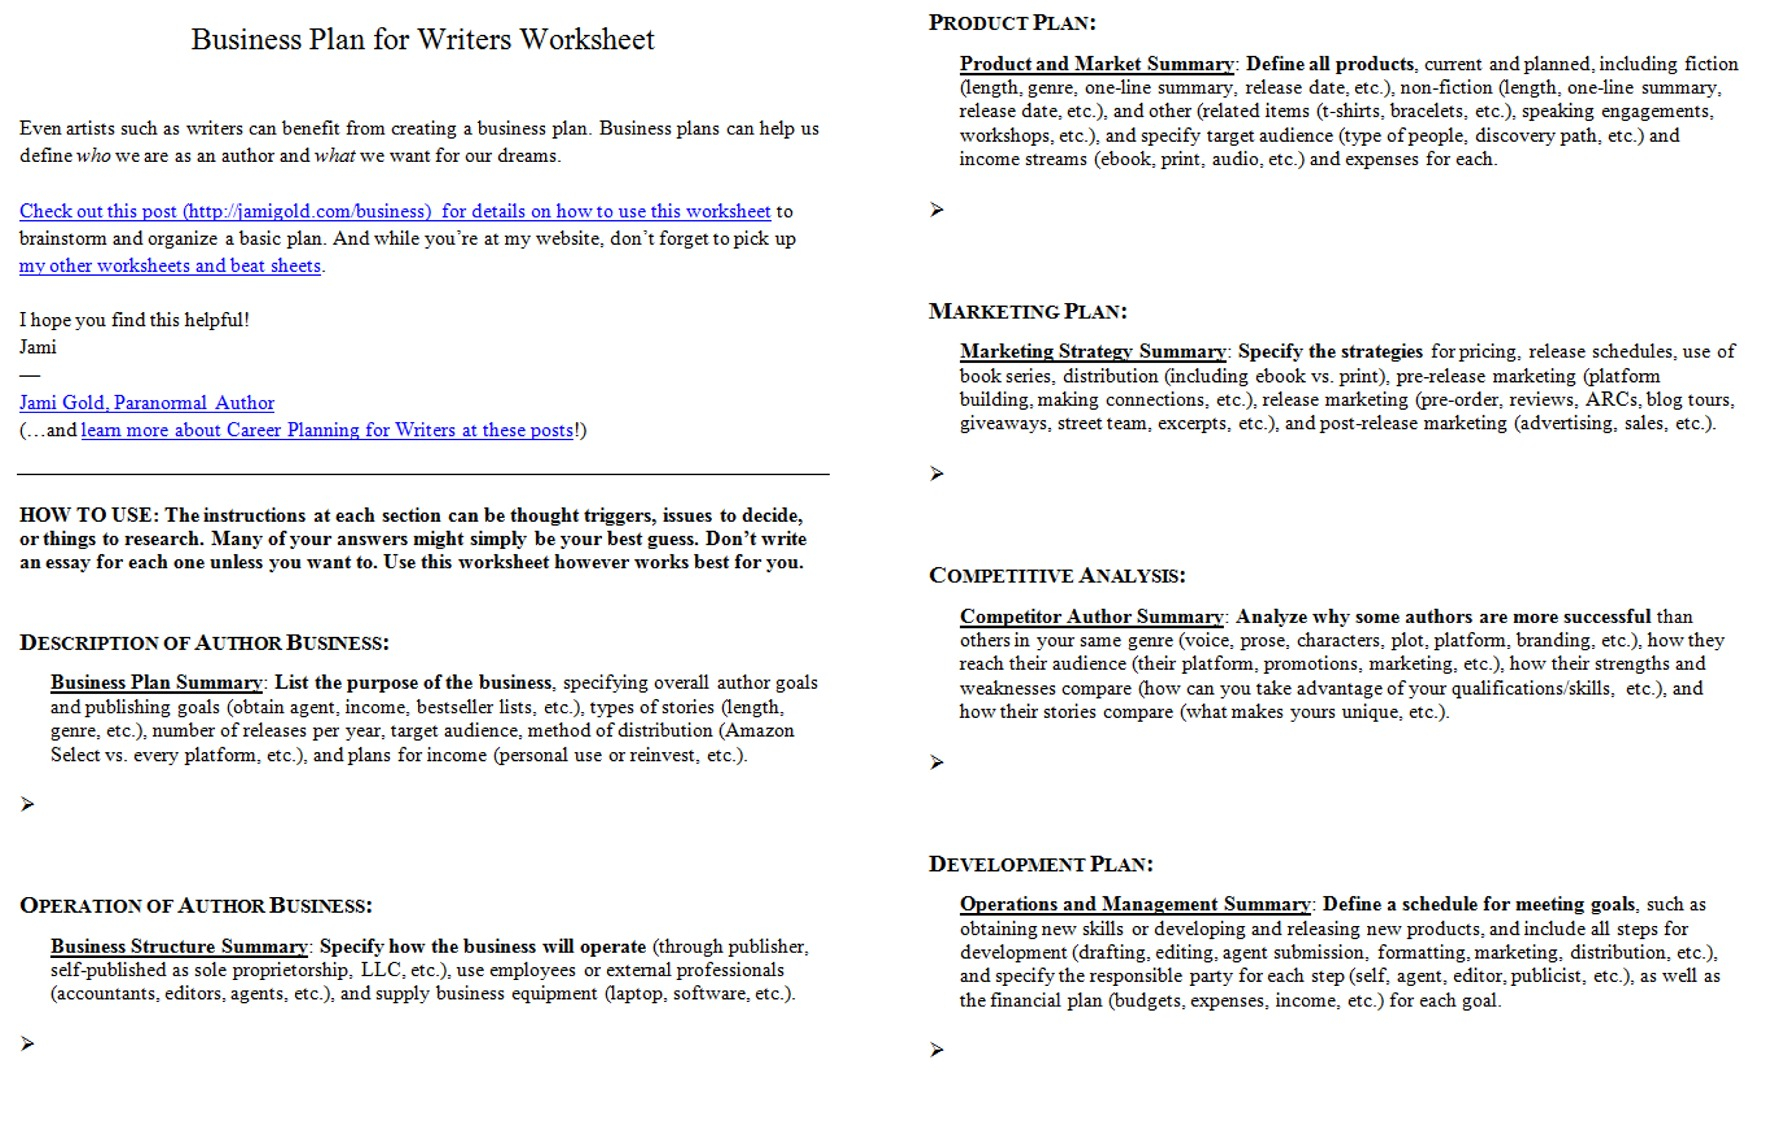 Proatmealus  Winsome Worksheets For Writers  Jami Gold Paranormal Author With Remarkable Screen Shot Of Both Pages Of The Business Plan For Writers Worksheet With Adorable Irs Personal Allowances Worksheet Also Cause And Effect Worksheets For St Grade In Addition Math Grade  Worksheets And Diabetic Meal Planning Worksheet As Well As Graphing A Linear Equation Worksheet Additionally U Worksheets From Jamigoldcom With Proatmealus  Remarkable Worksheets For Writers  Jami Gold Paranormal Author With Adorable Screen Shot Of Both Pages Of The Business Plan For Writers Worksheet And Winsome Irs Personal Allowances Worksheet Also Cause And Effect Worksheets For St Grade In Addition Math Grade  Worksheets From Jamigoldcom